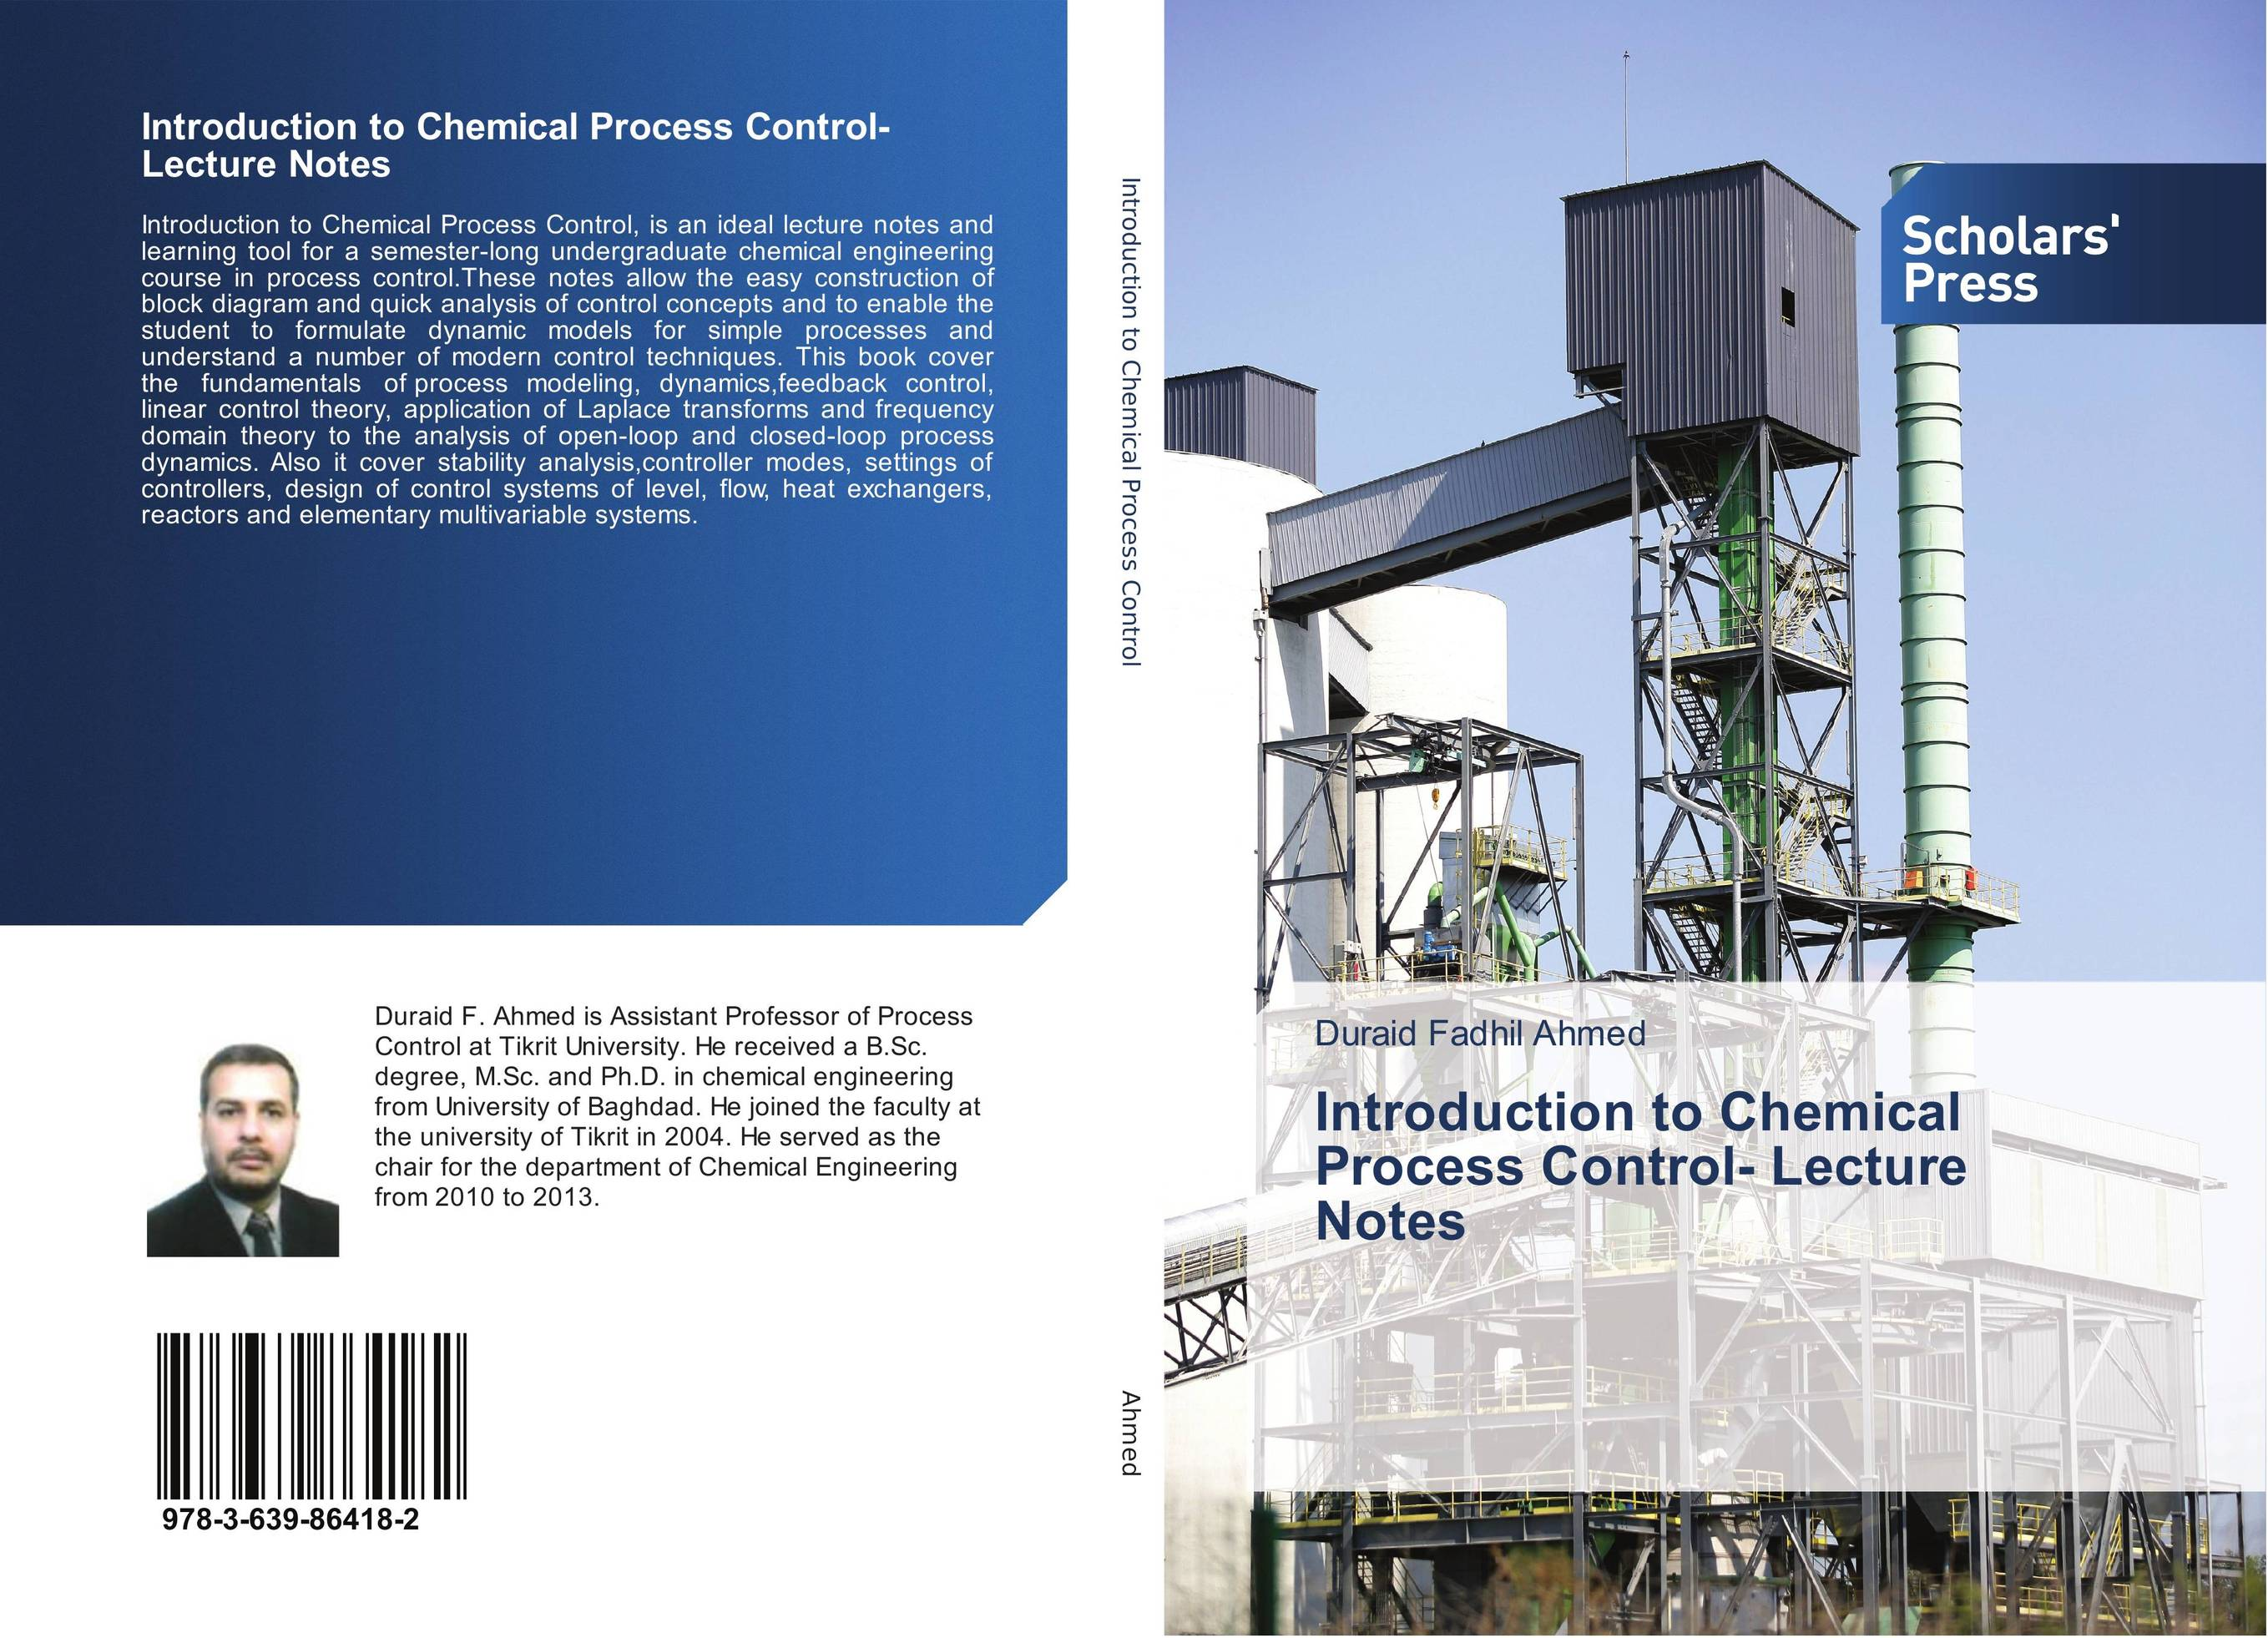 Introduction to Chemical Process Control- Lecture Notes lecture notes emergency medicine